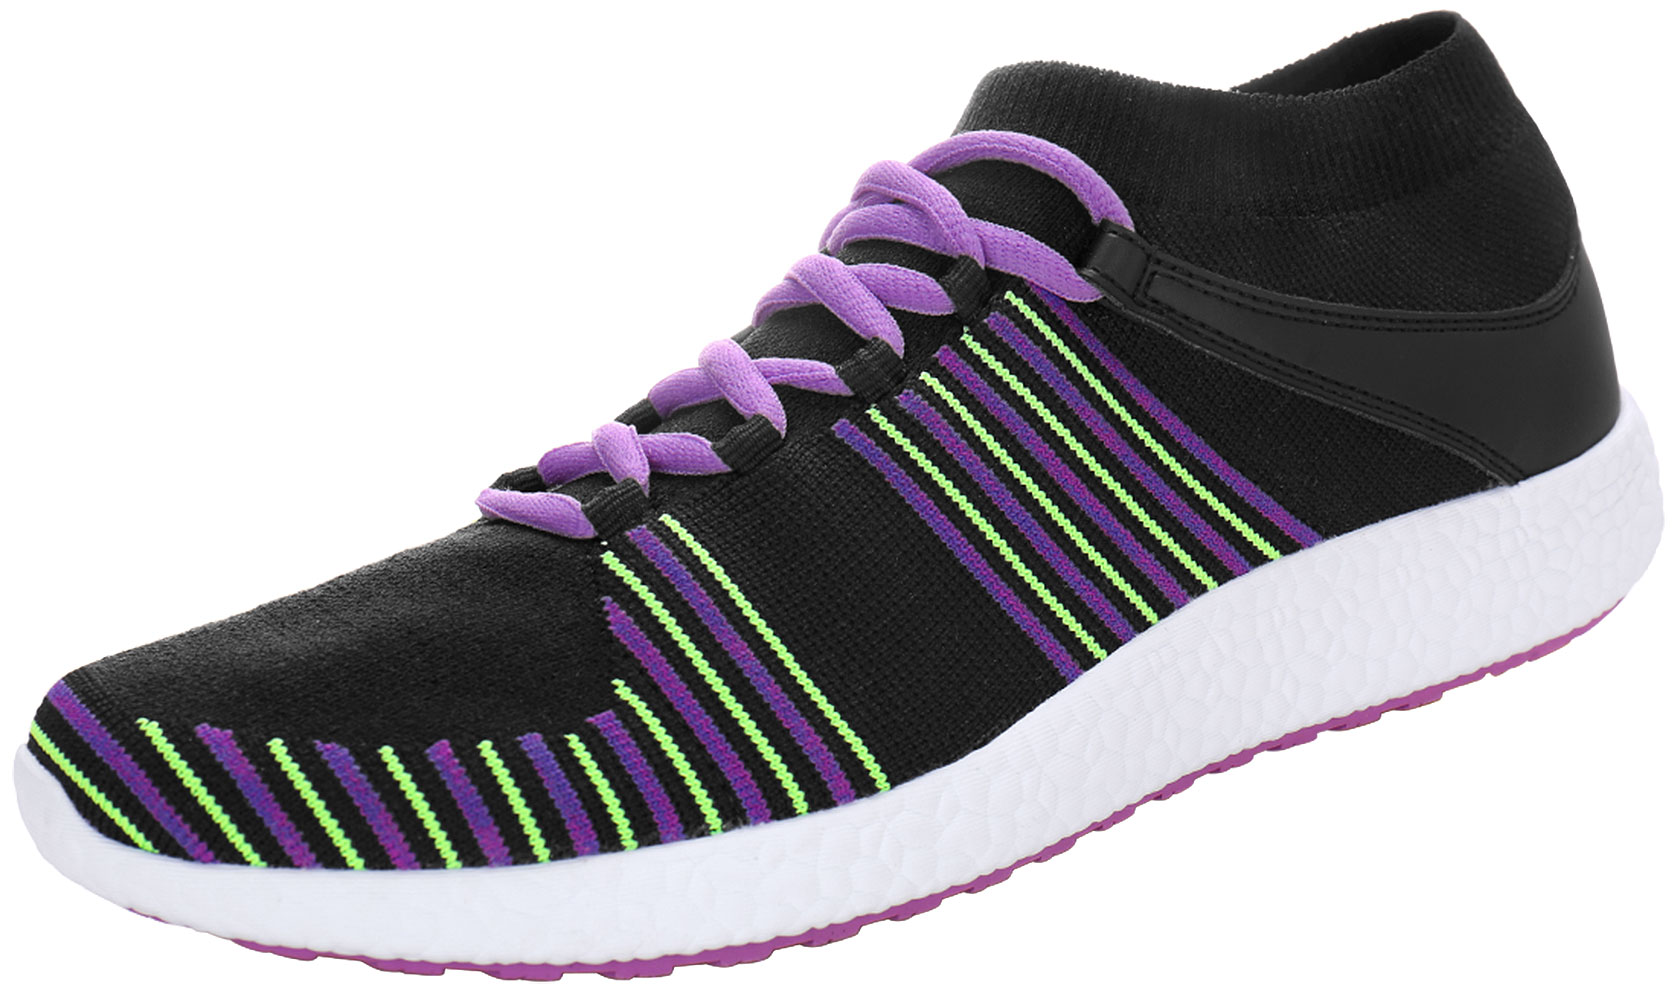 PYPE Women Knitting Mesh Upper Striped Lace Up Training Shoes Black US 9. 5